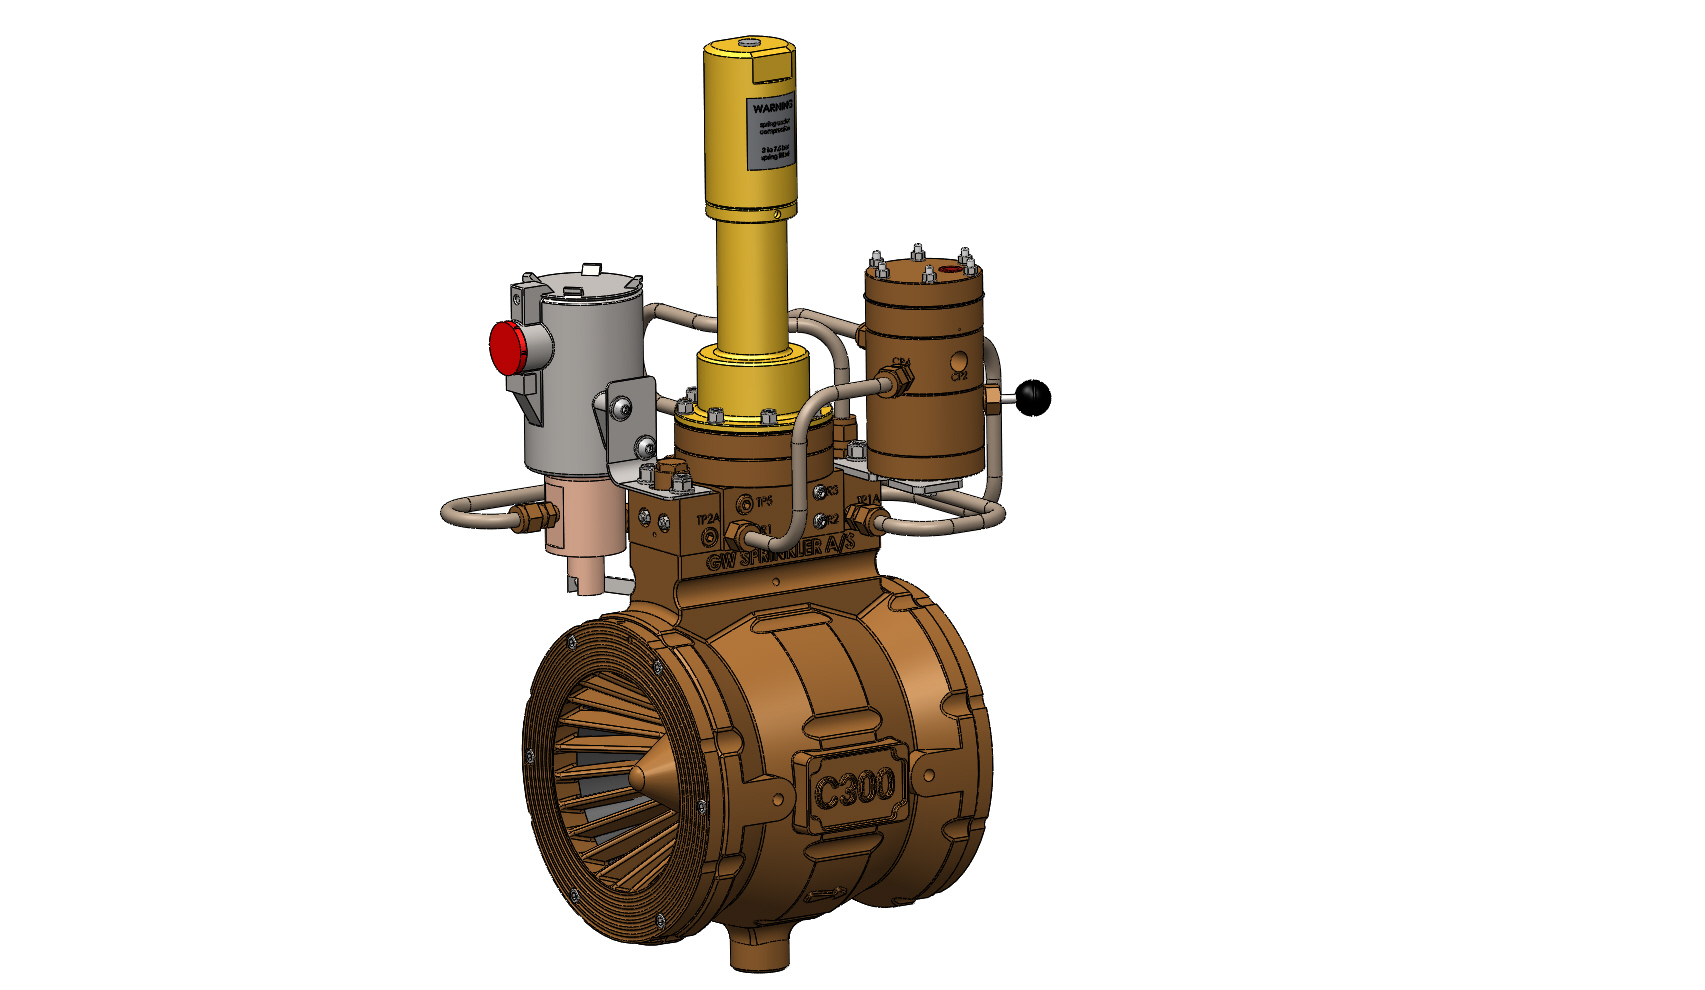 AUTOMATIC WATER CONTROL VALVES - GW Sprinkler A/S